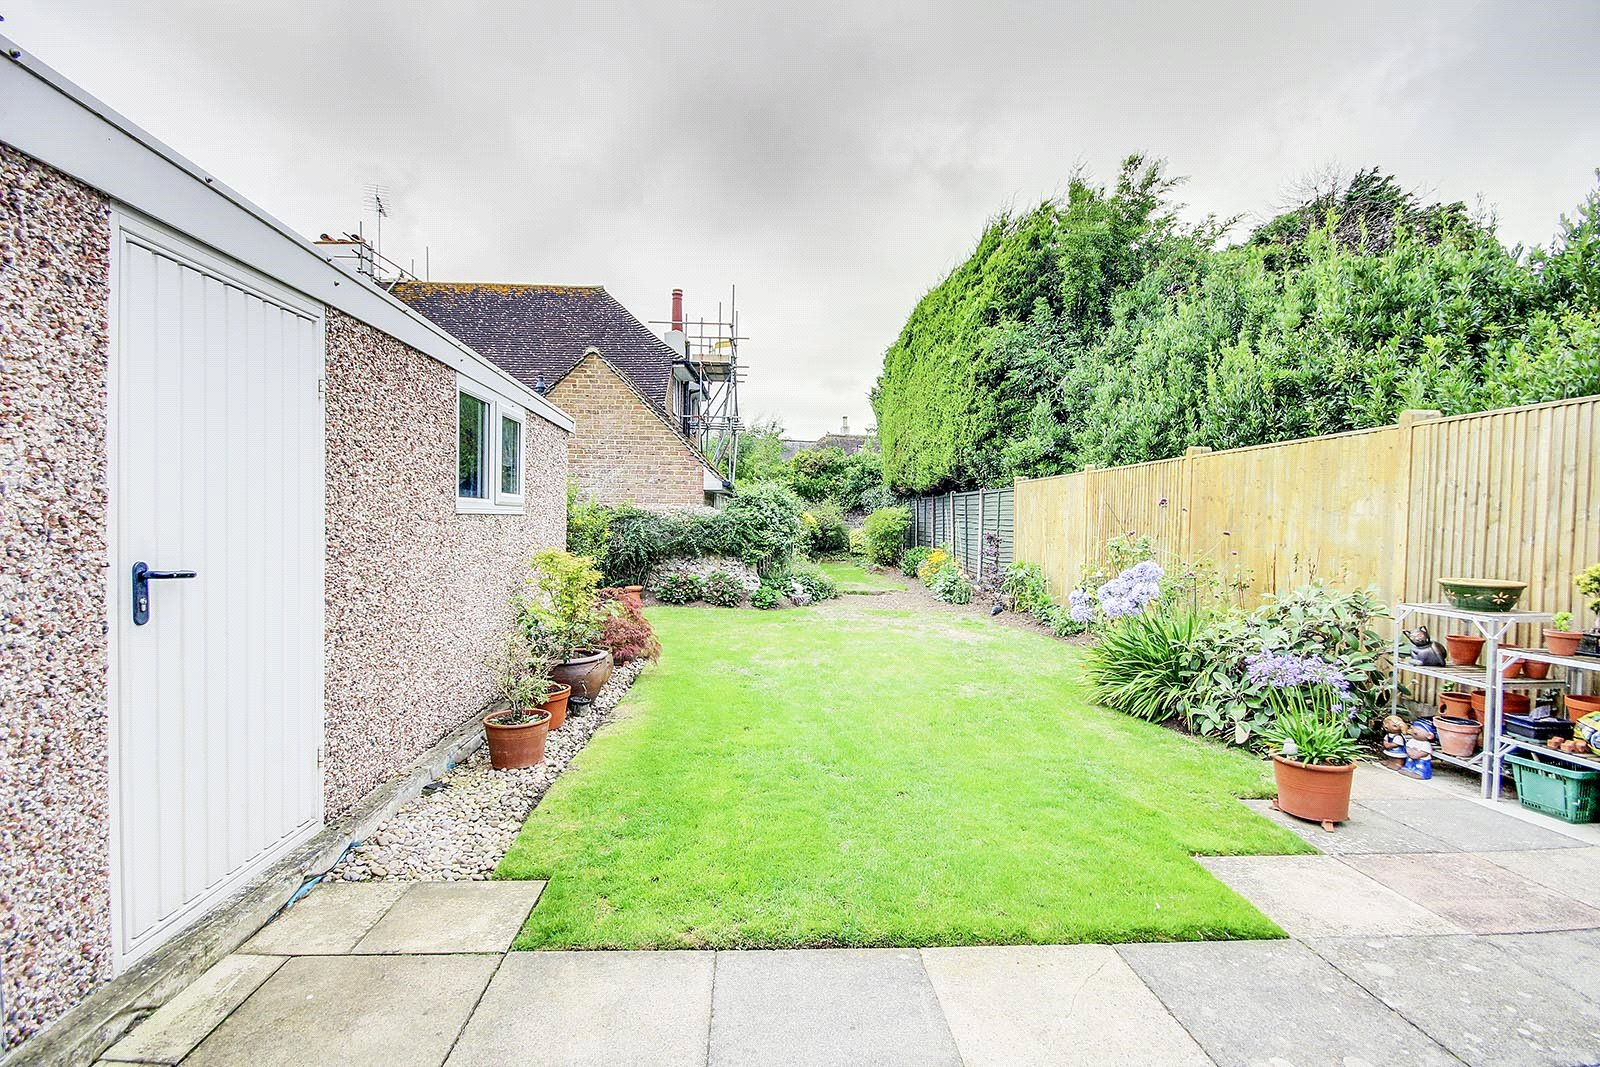 4 bed house for sale in Lansdowne Road, Angmering  - Property Image 3